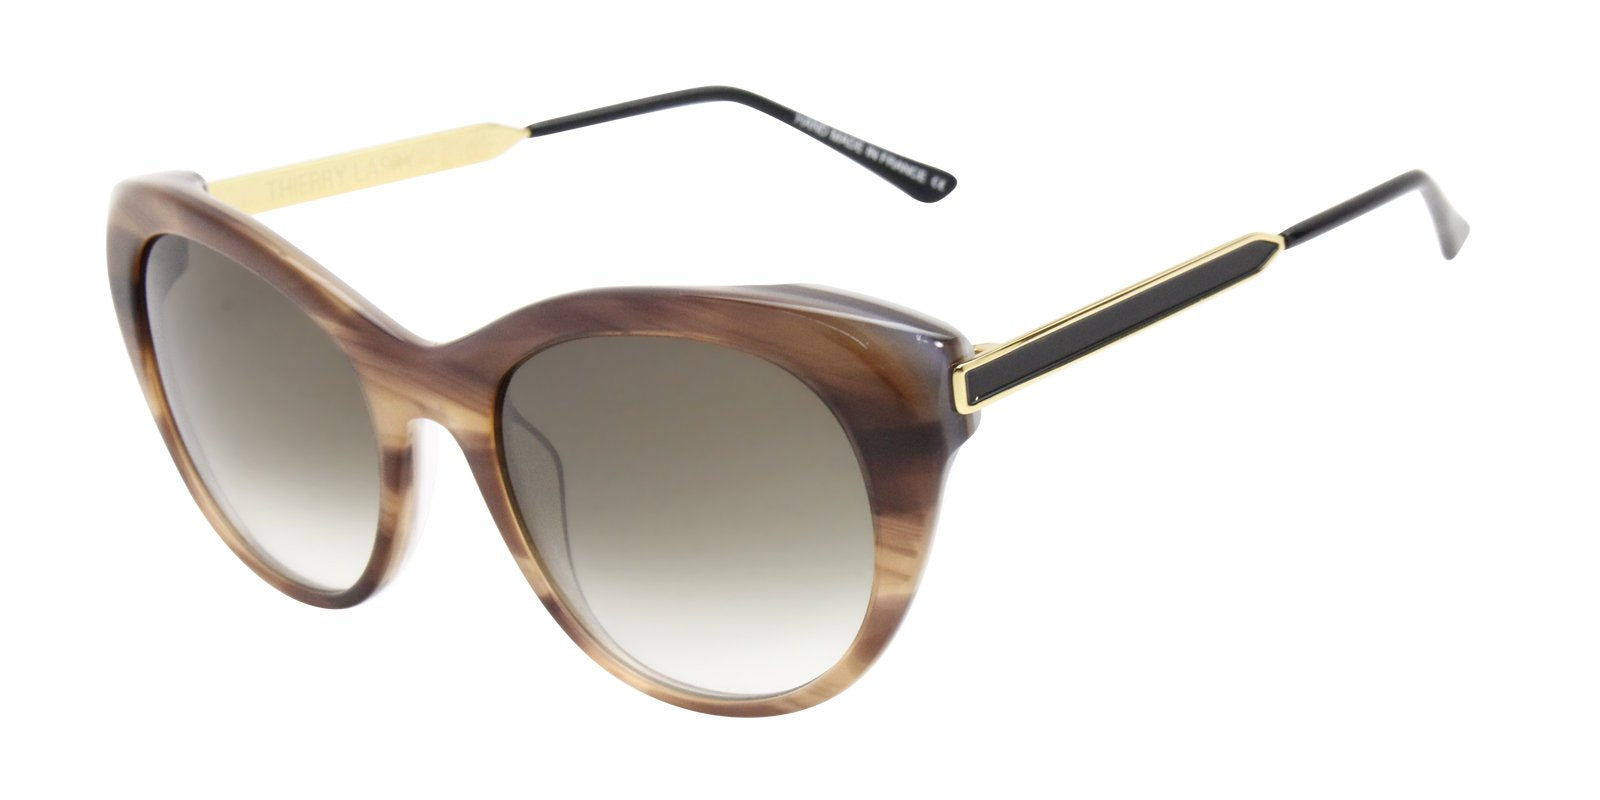 Thierry Lasry - Fingery Brown Oval Women Sunglasses - 56mm-Sunglasses-Designer Eyes